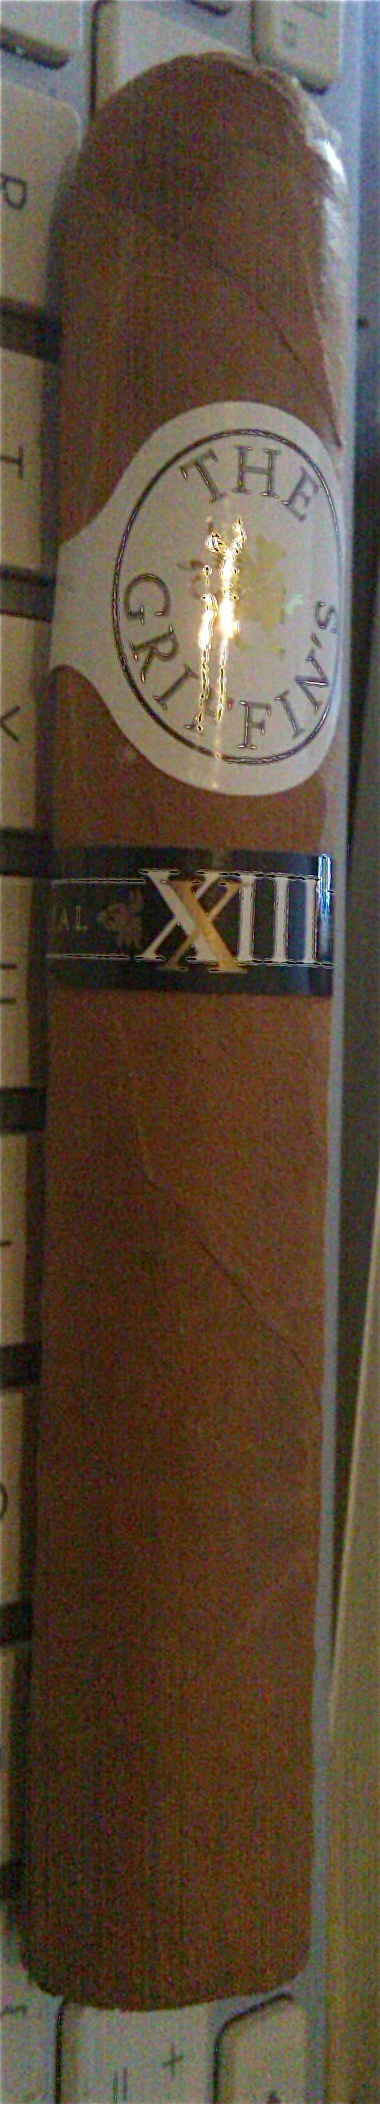 Cigar Review: Griffins XXIII 2007